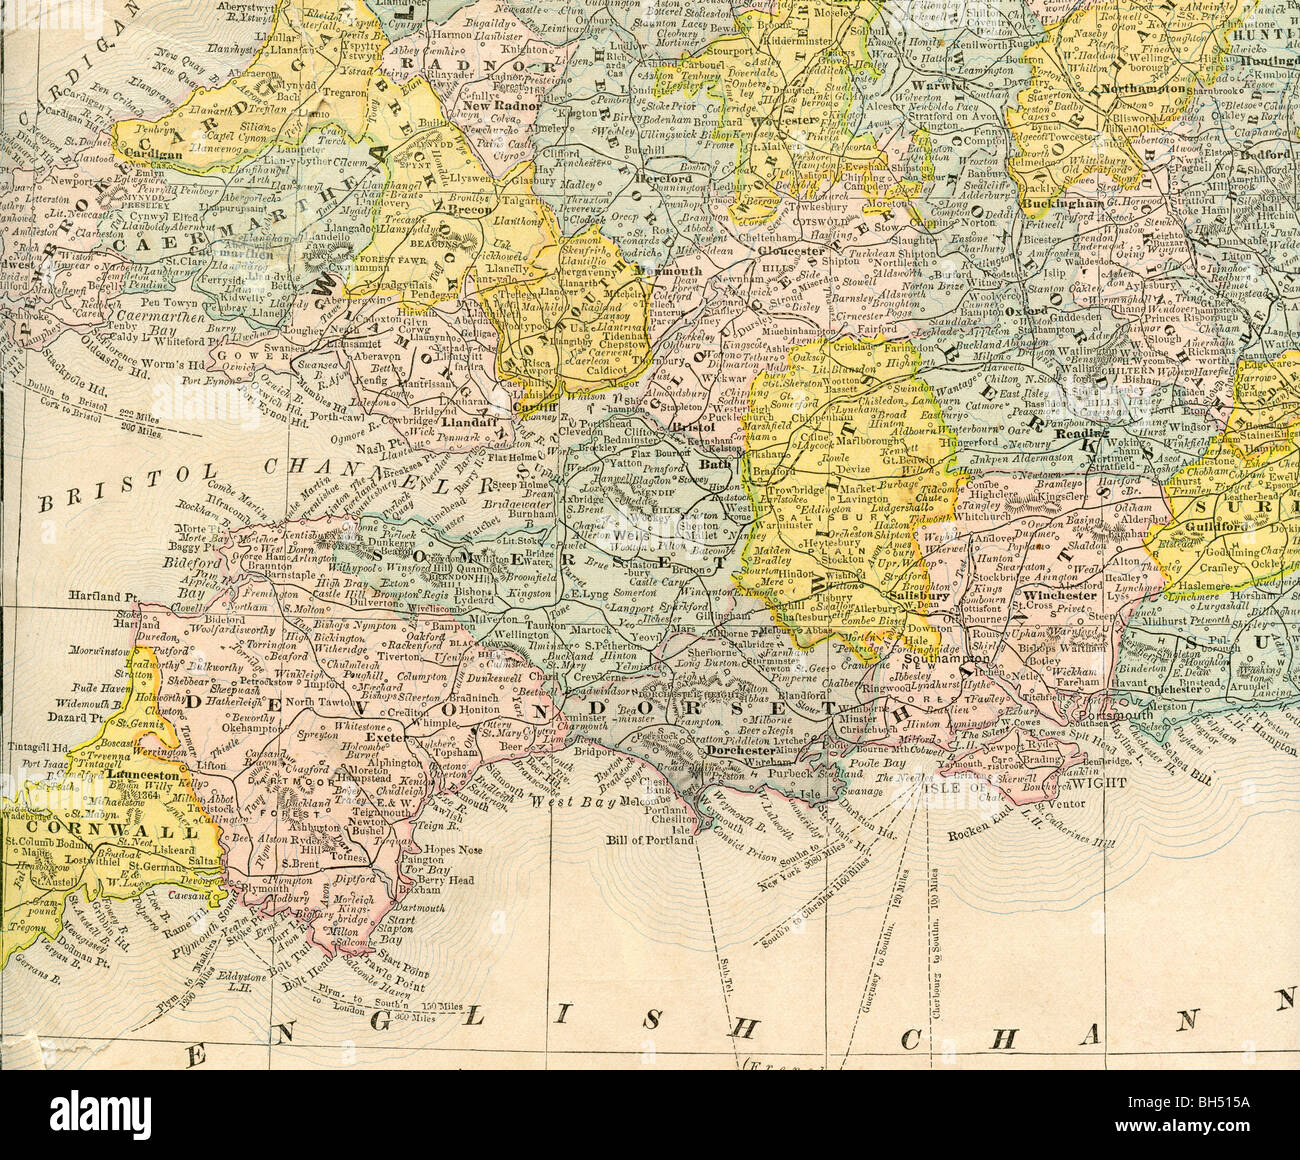 Geography Map Of England.Old Map Of Southwest England From Original Geography Textbook 1884